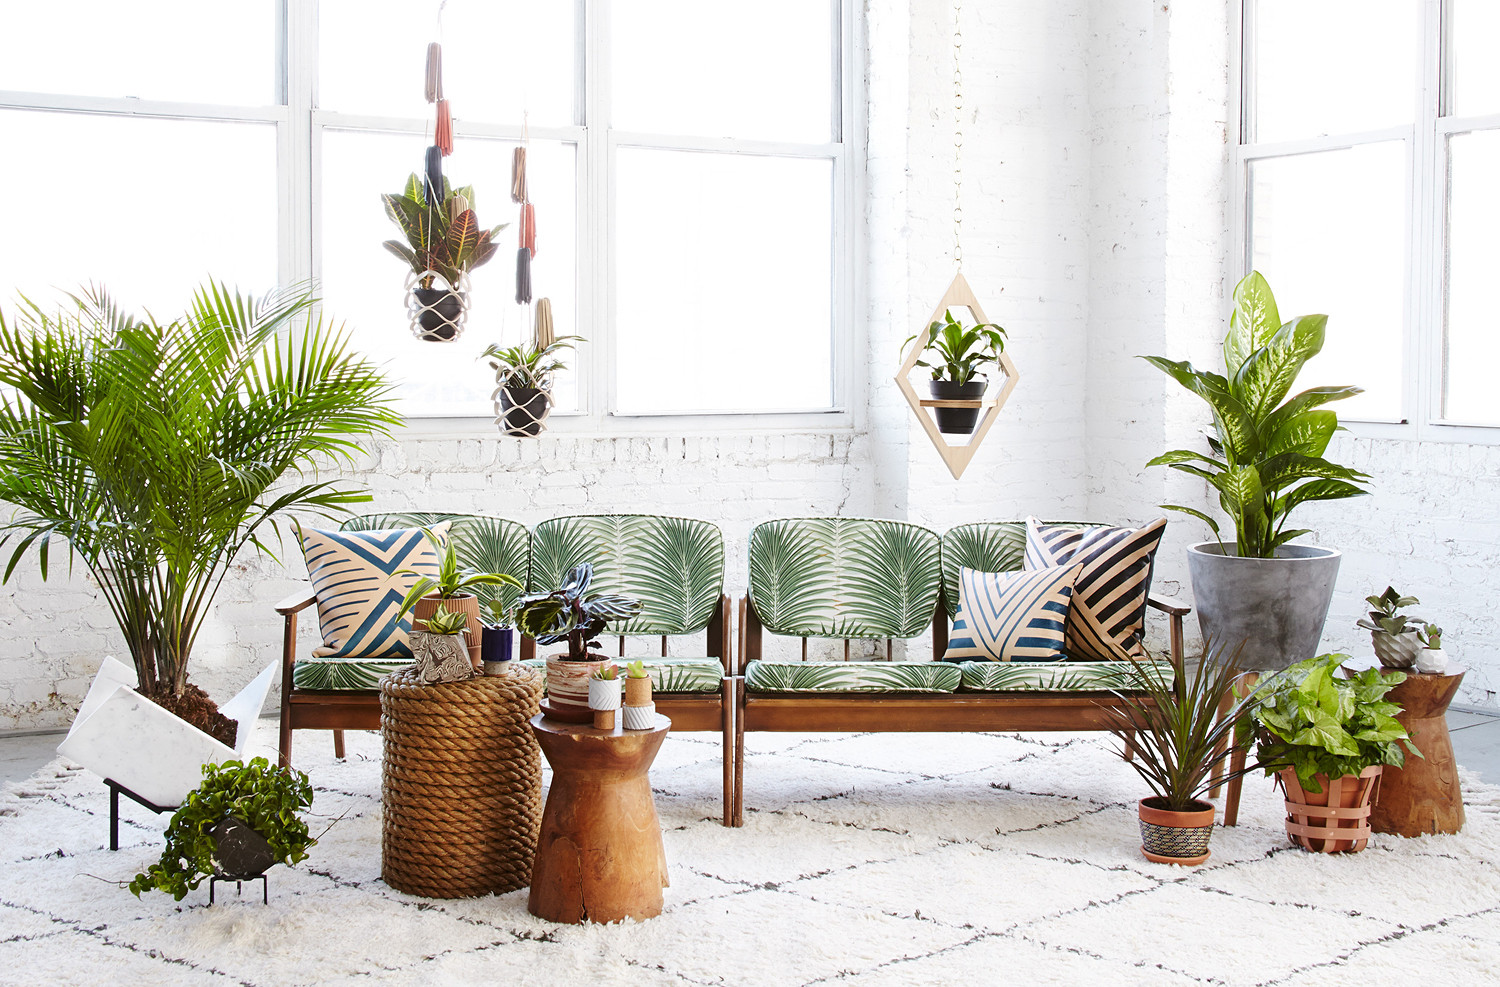 An airycorner featuring a few of spring's best planters, with plants by Costa Farms. Shot on location at Patinain Brooklyn, New York.